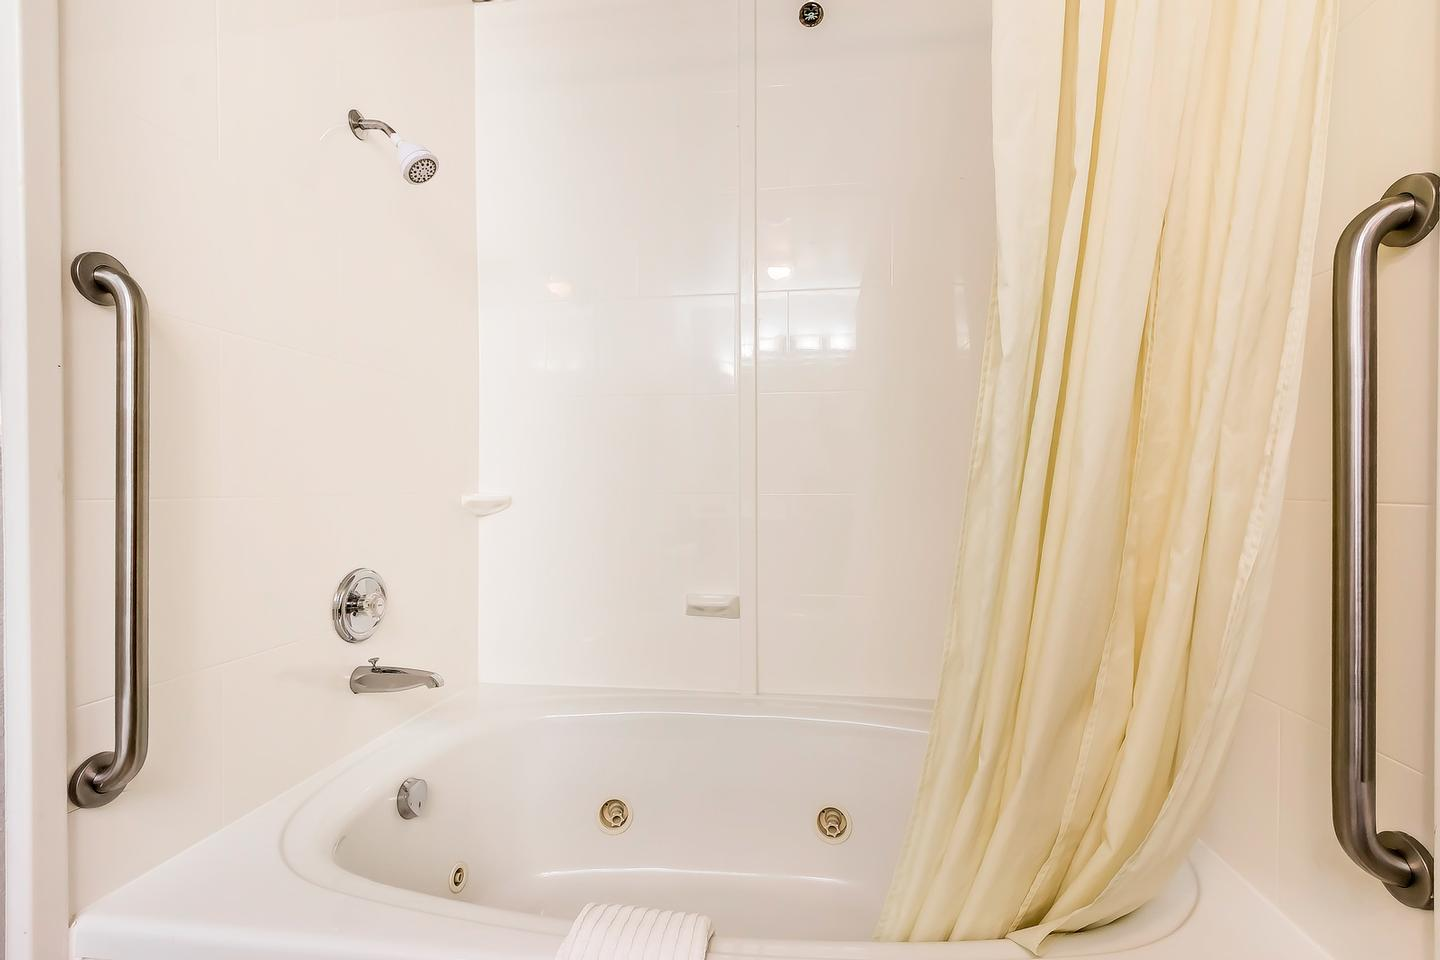 St.charles Suite Whirlpool Tub 14 of 23